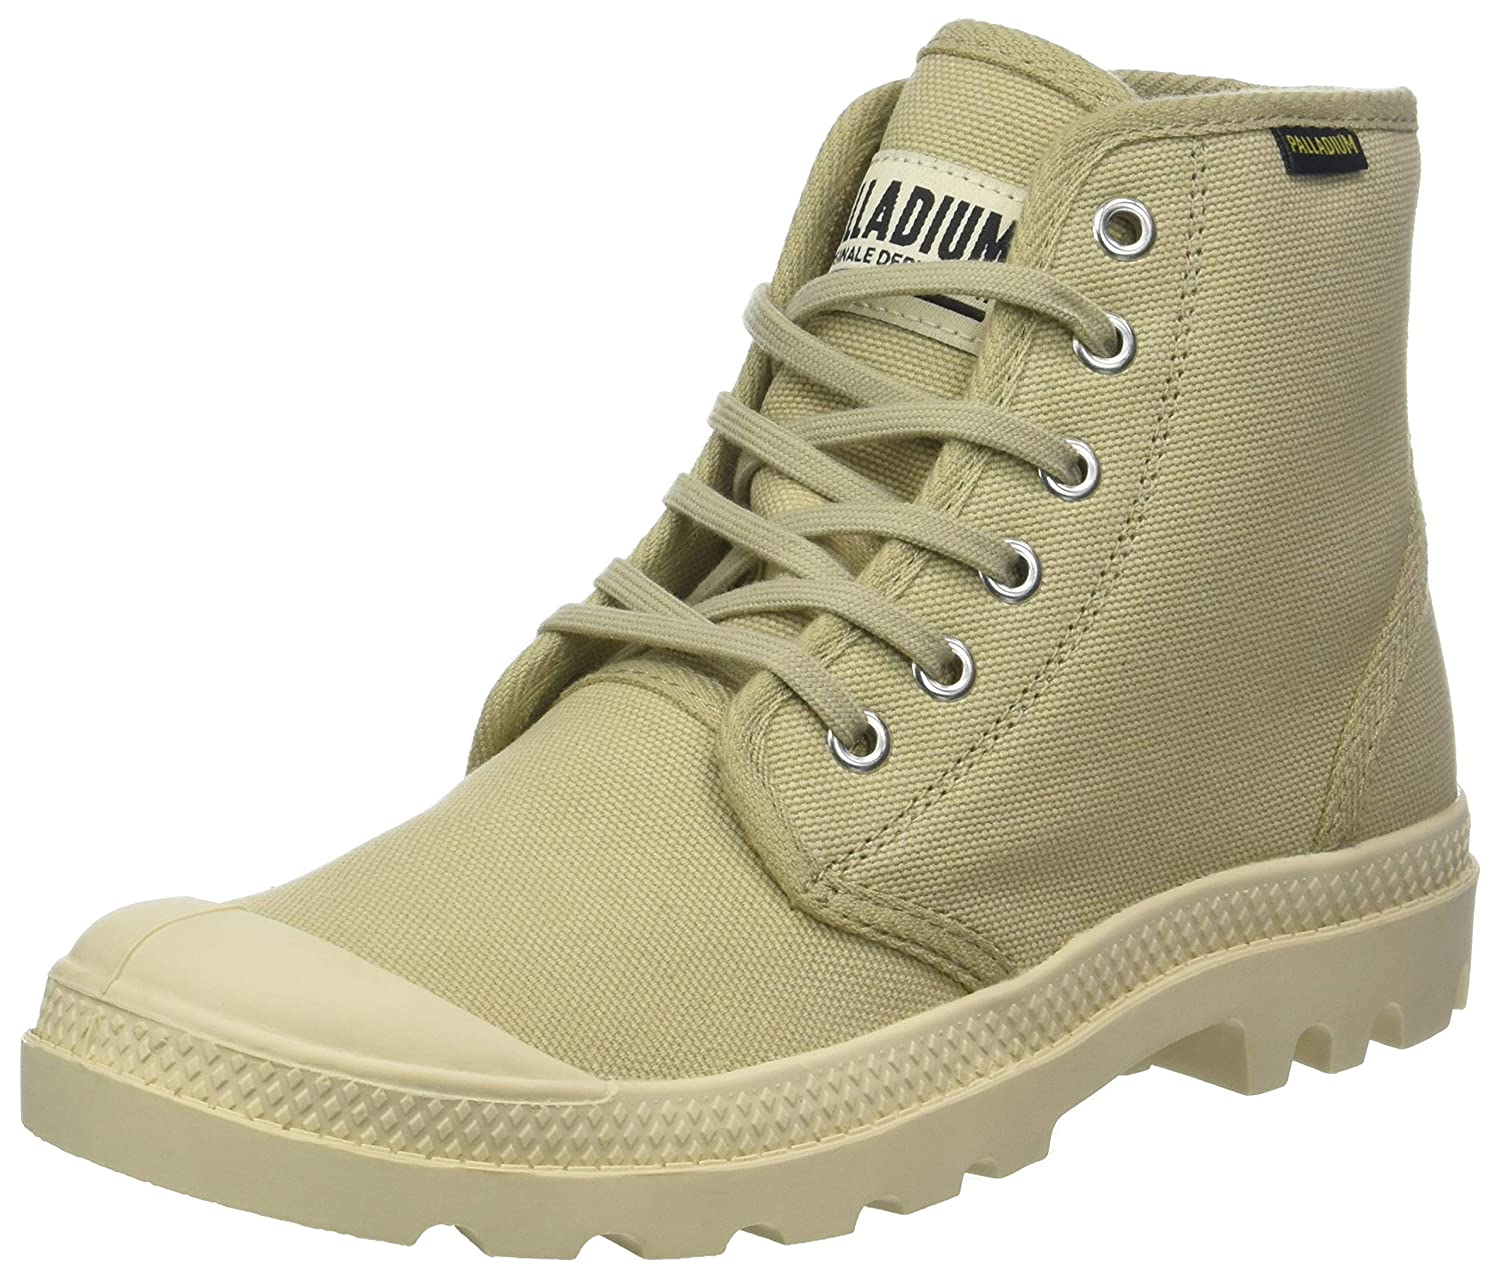 Palladium Pampa Hi Originale, Bottes Hi et B006DU3WOM Bottines Souples (Sahara/écru Mixte Adulte Beige (Sahara/écru F90) 8a7d816 - deadsea.space